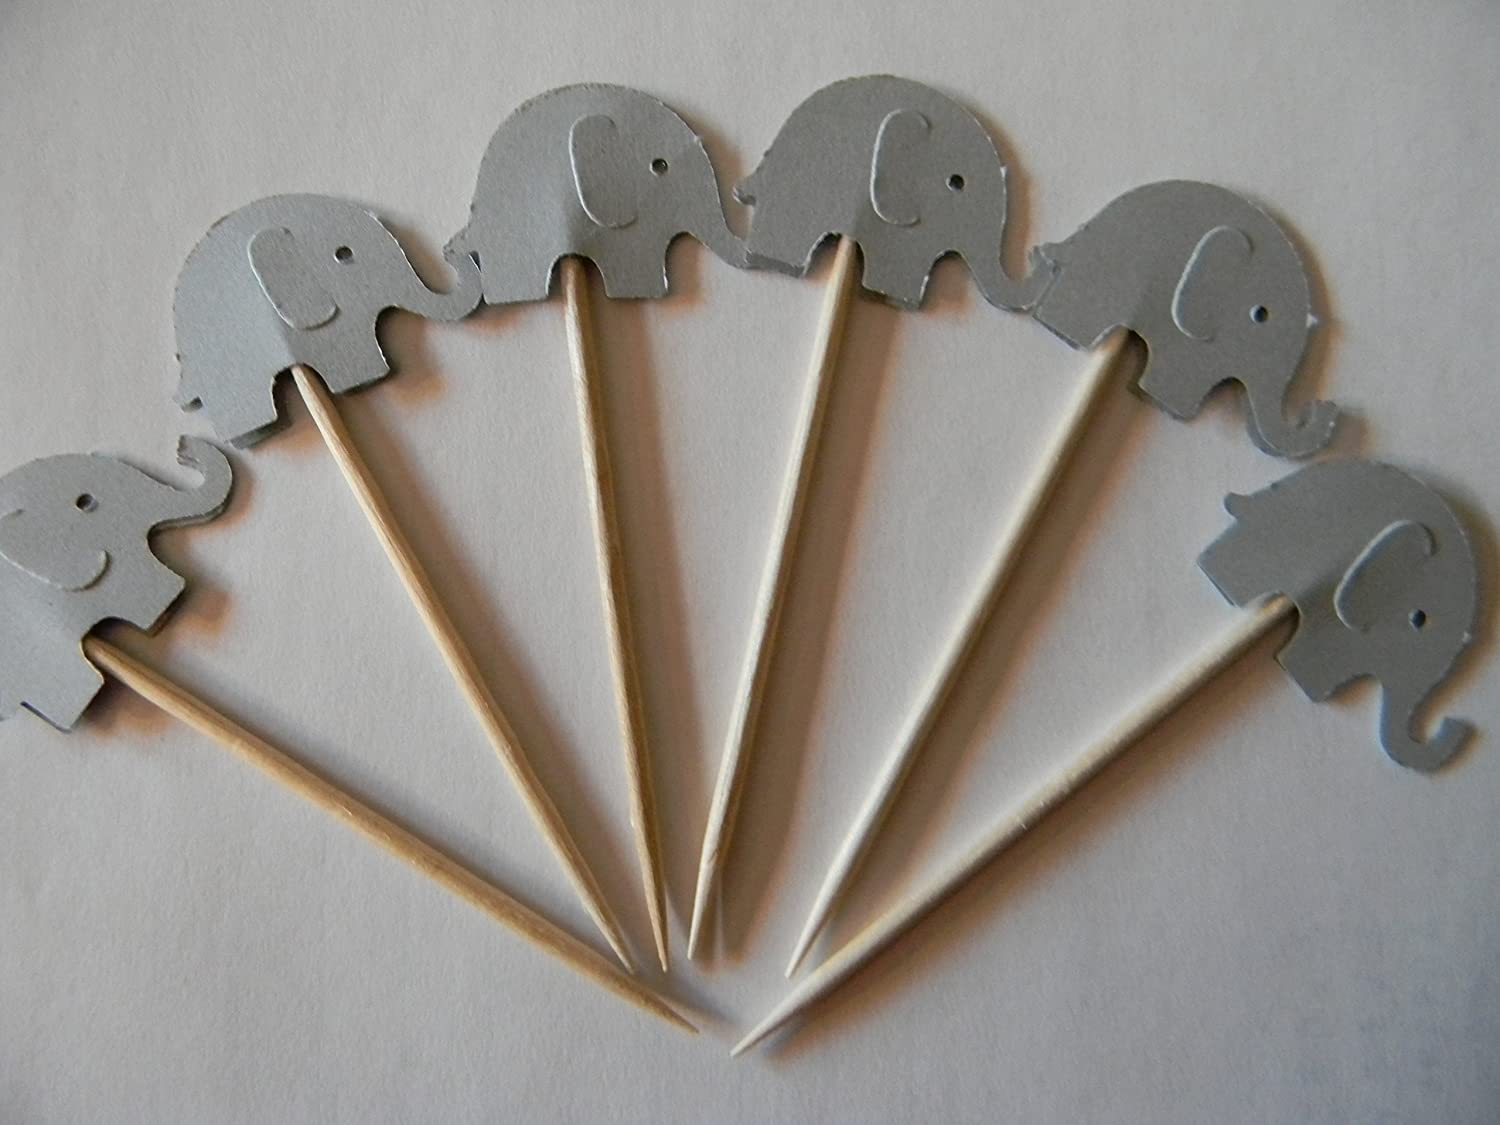 B017PA3F90 24 gray elephant elephants cupcake toppers food picks baby shower decor 91OmBZD2BvUL